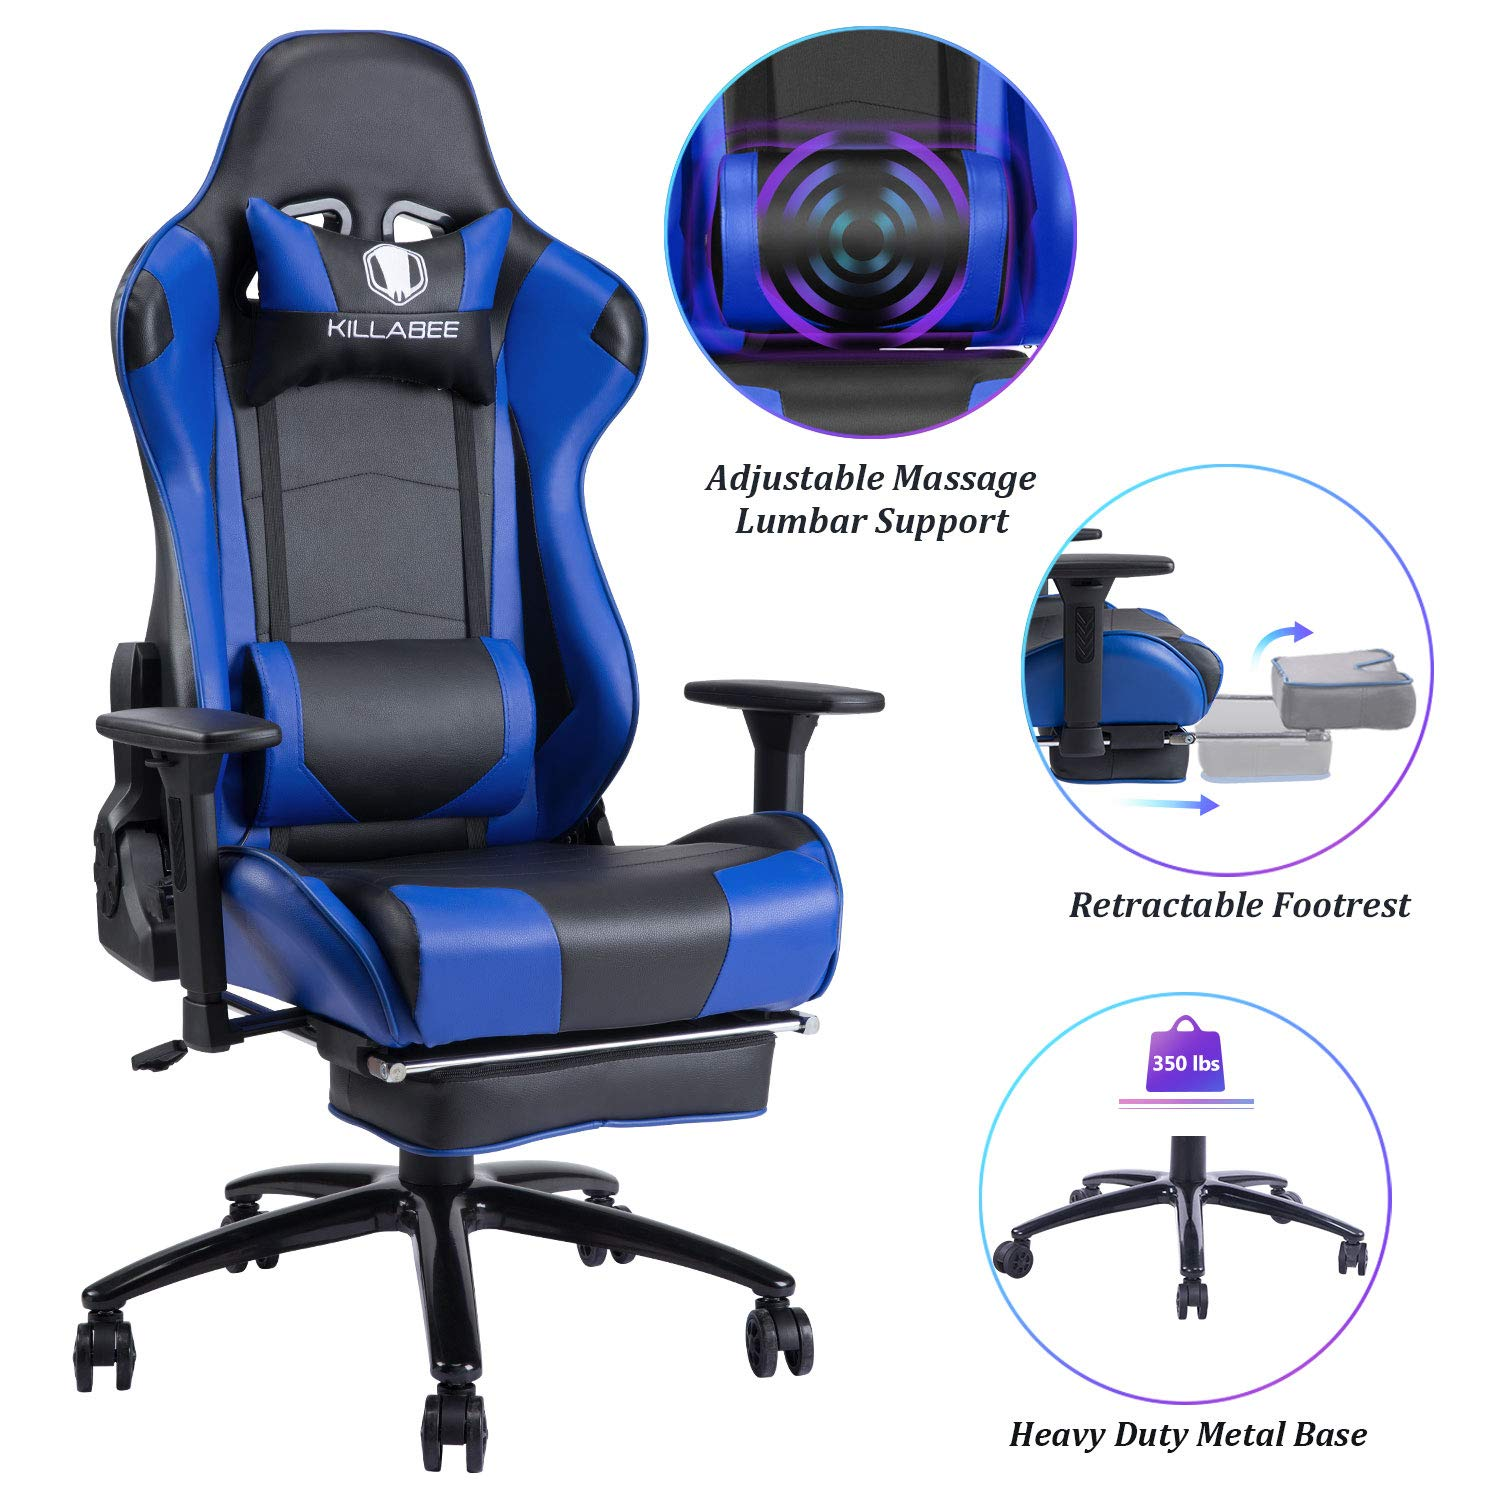 Blue Whale Massage Reclining Gaming Chair – High Back Racing Computer Desk Office Chair Swivel Ergonomic Executive Leather Chair with Footrest and Adjustable Armrests 8280Blue